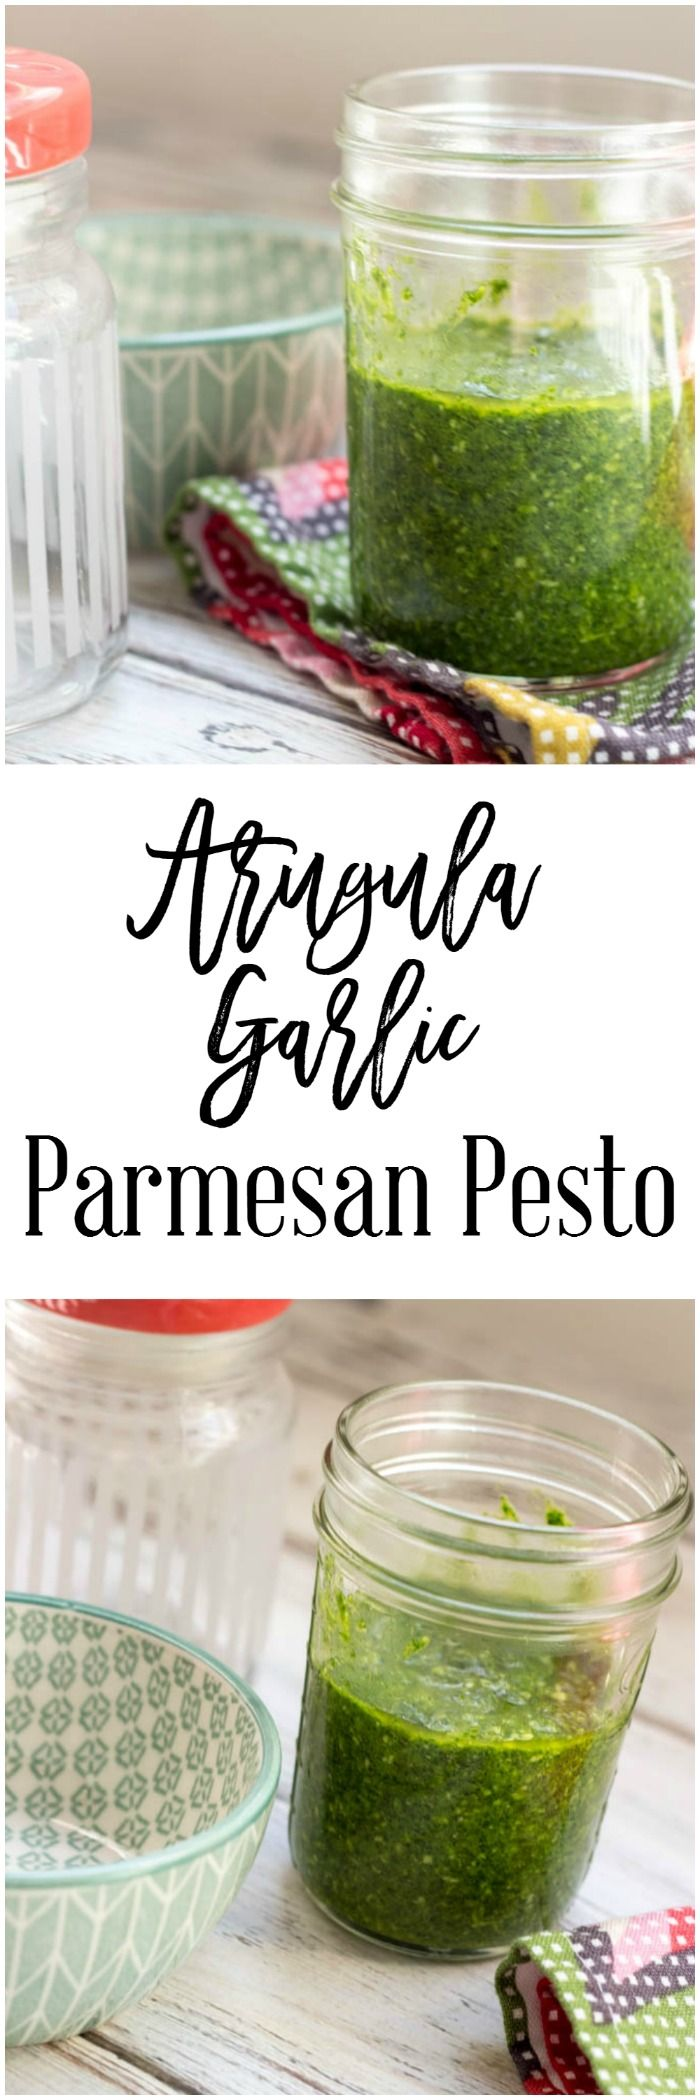 Arugula Garlic Parmesan Pesto - an easy side dish recipe that you can use for so many recipes. This pesto is easy to make and tastes amazing!